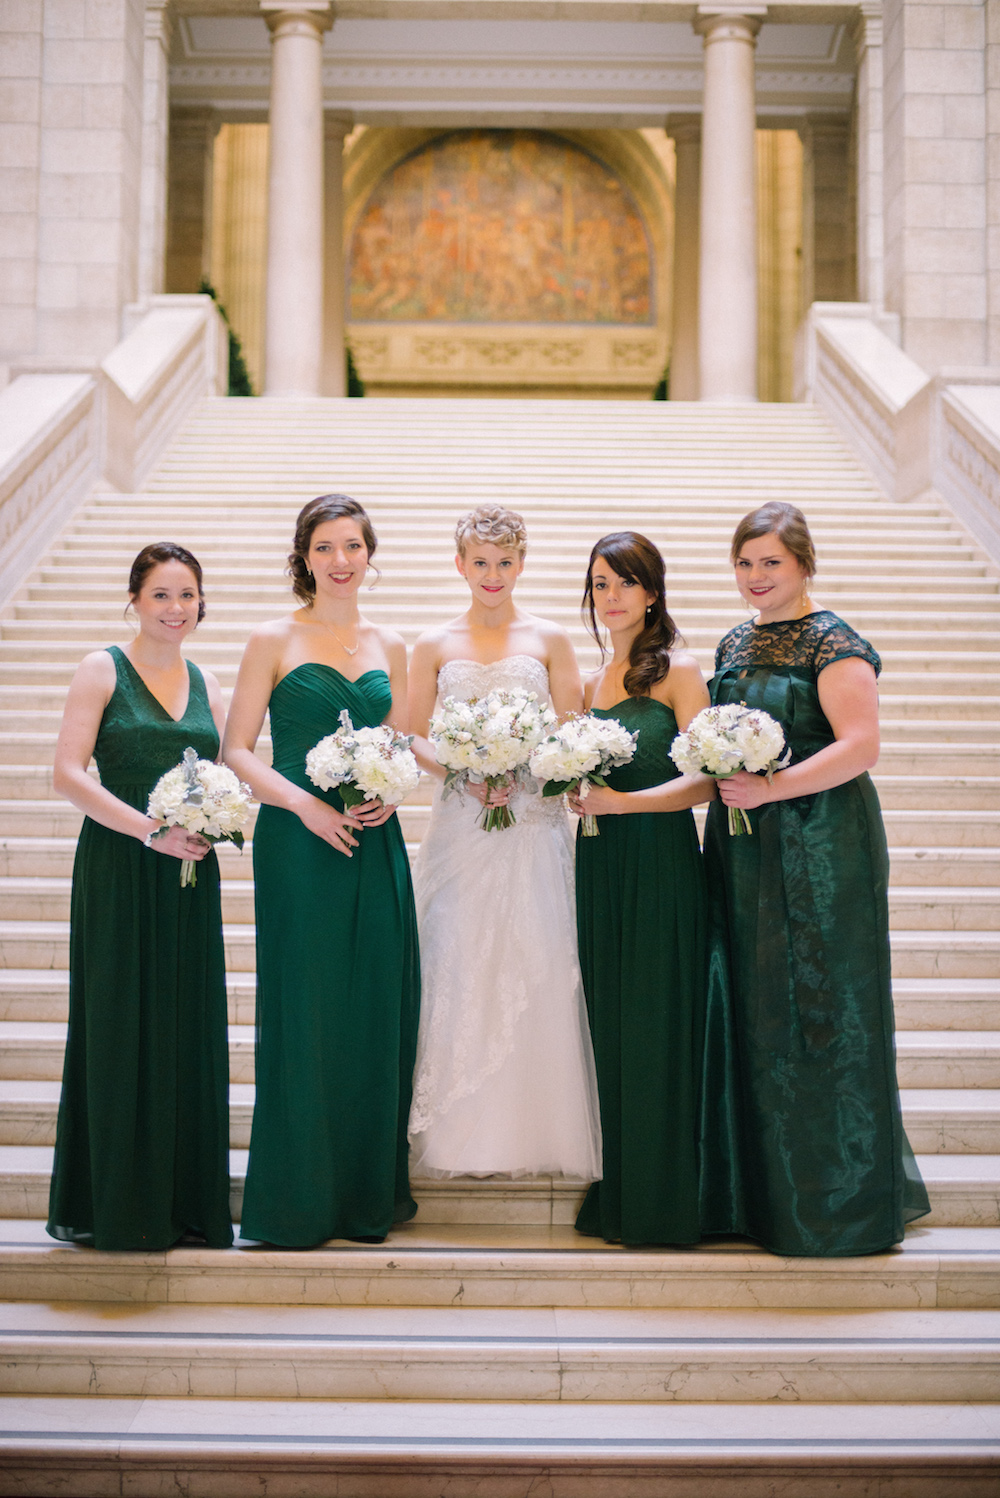 White and Green Wedding Ideas - Winter Weddings in Winnipeg